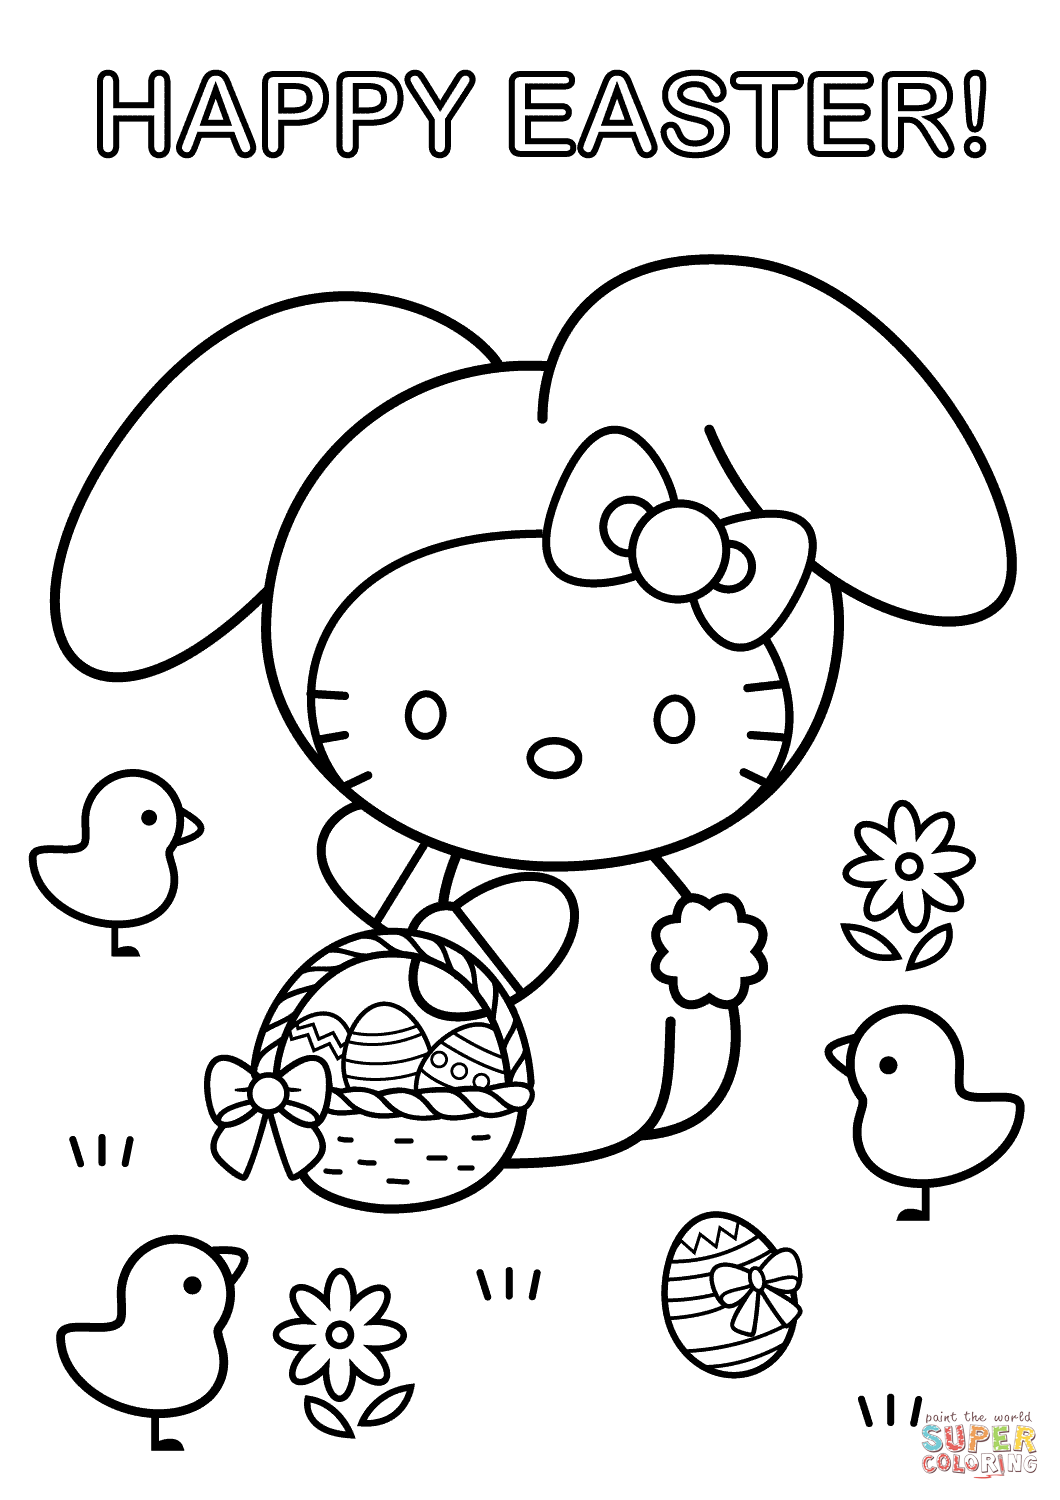 paw prints coloring pages paw patrol easter coloring pages at getcoloringscom prints coloring paw pages